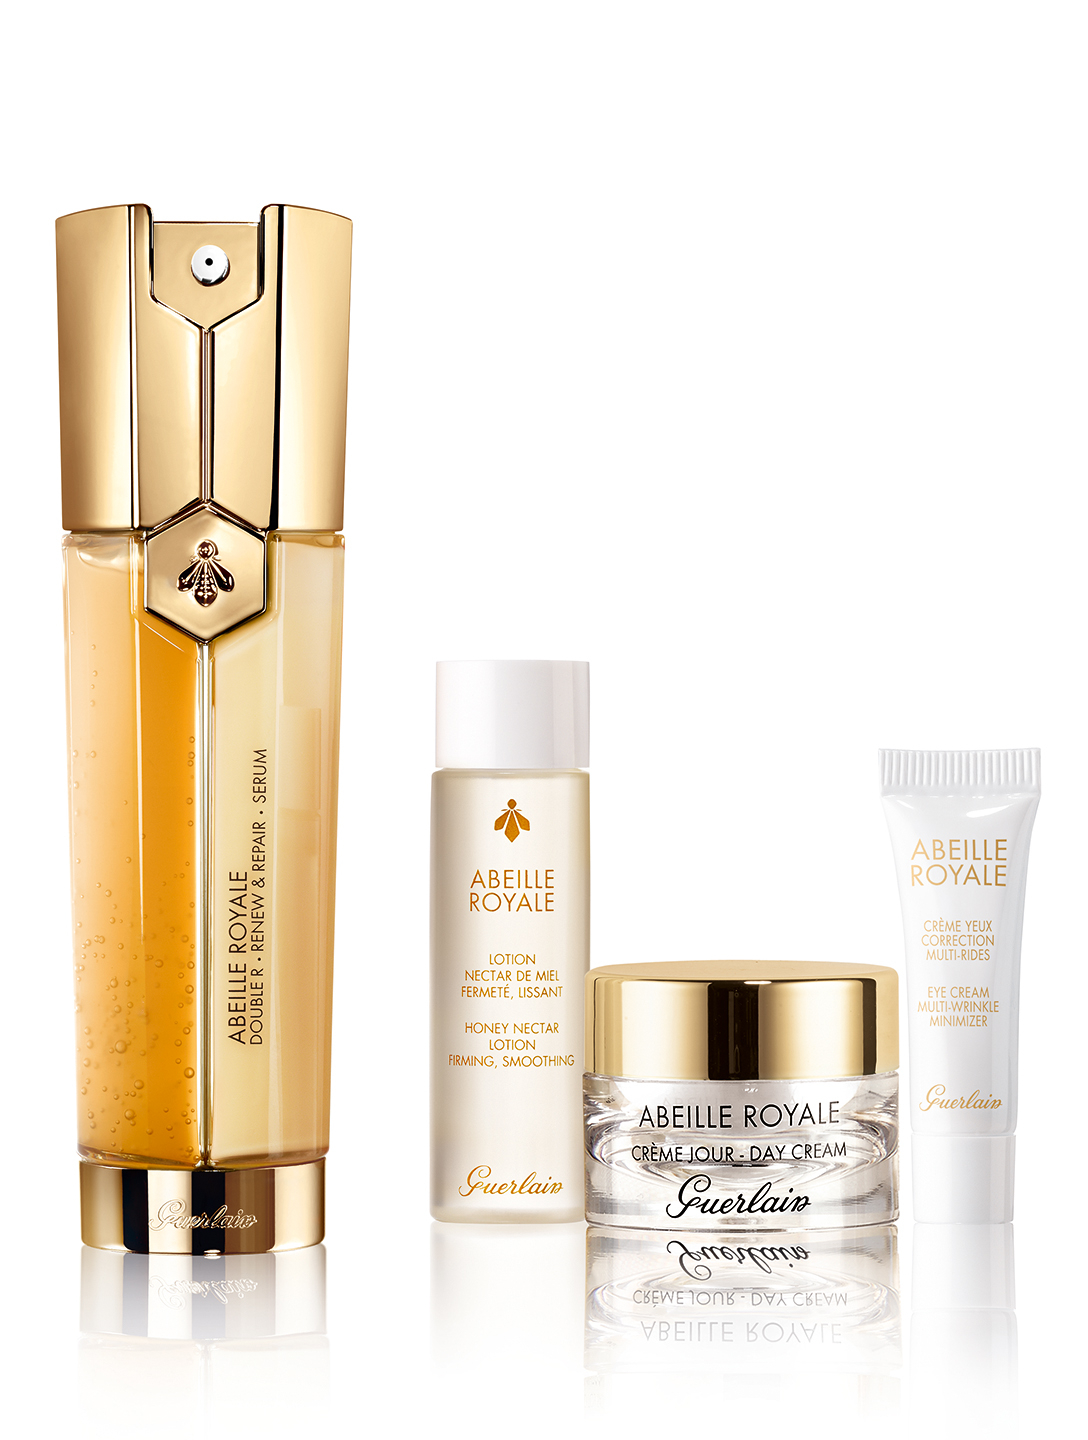 GUERLAIN Abeille Royale Double R Set Beauty